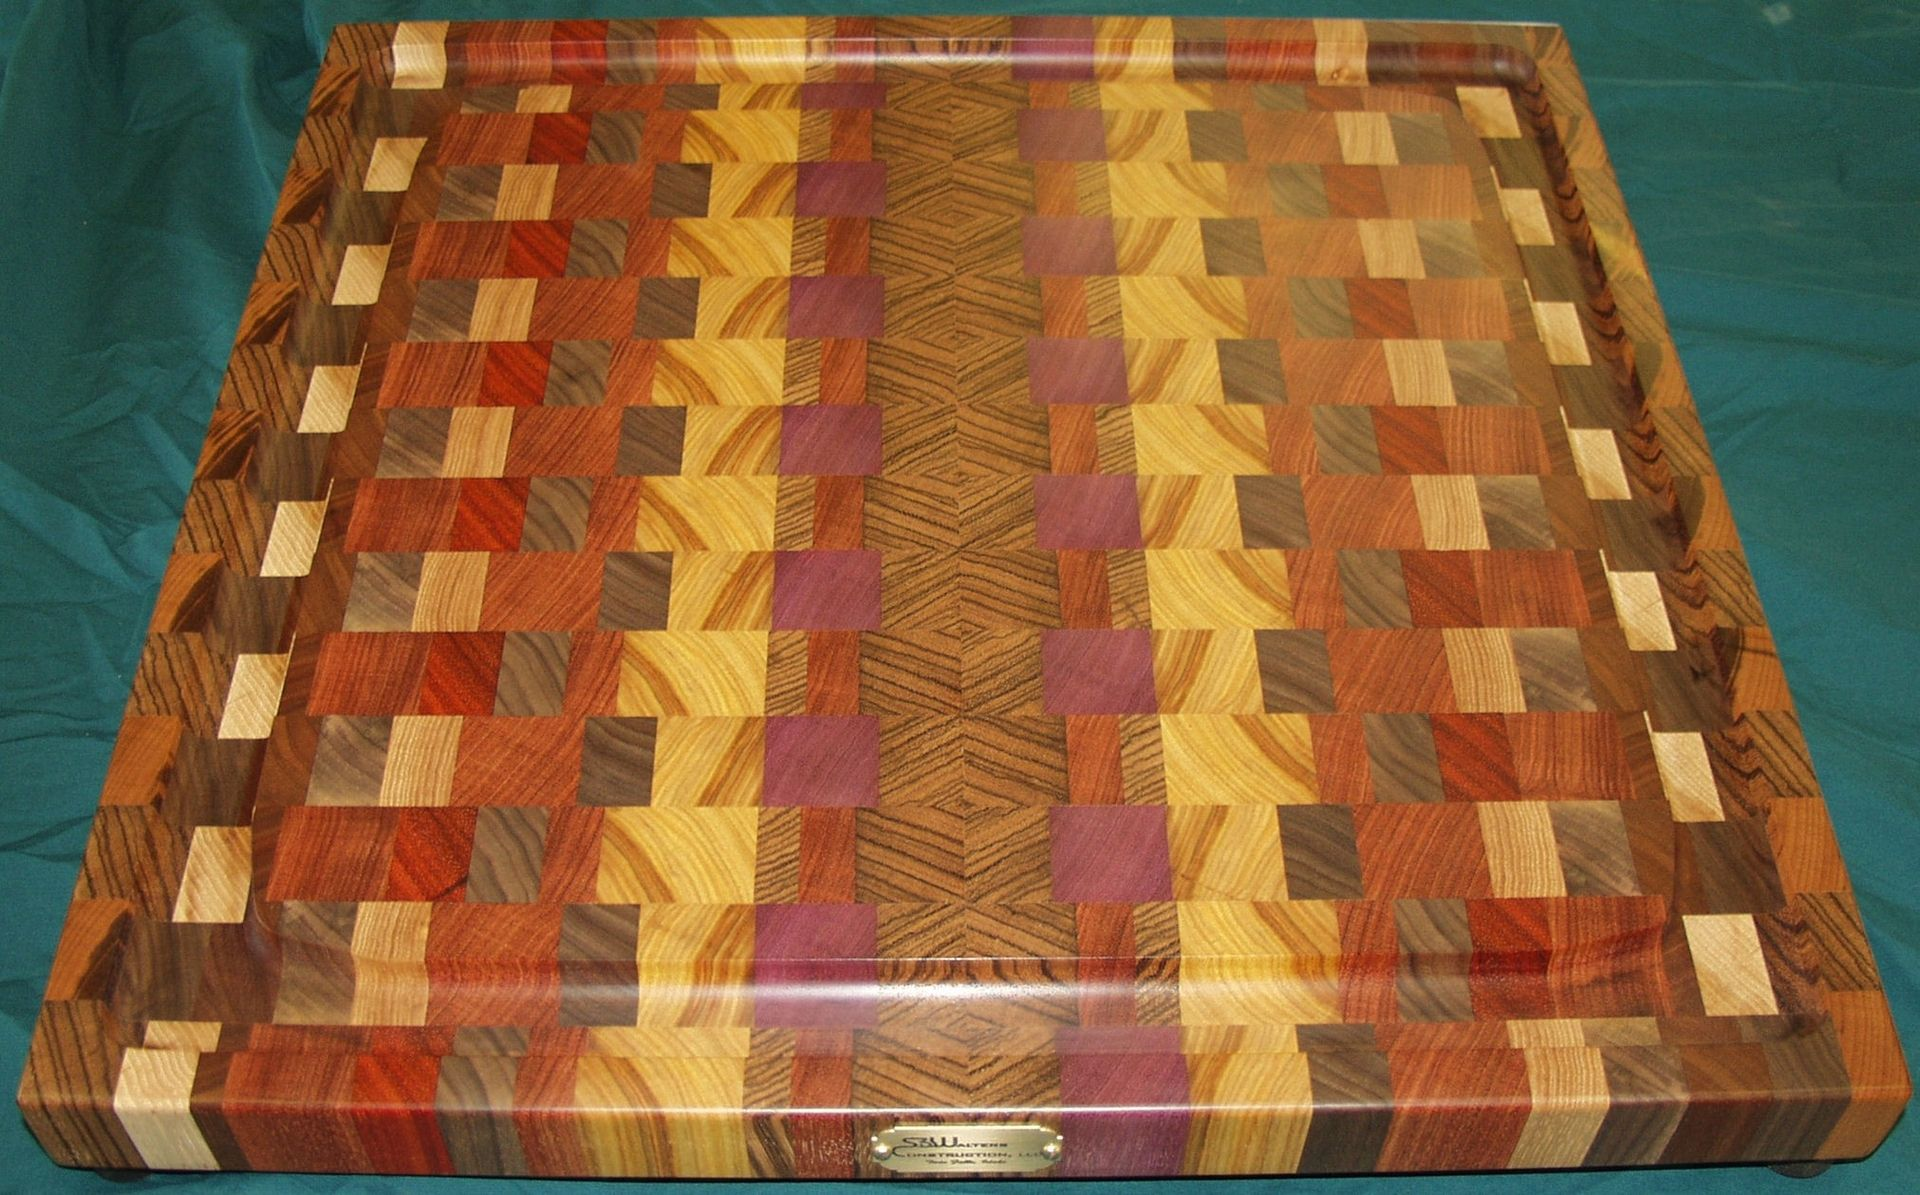 Handmade Exotic Woods End Grain Cutting Board Platter By Dissident Lumber Works